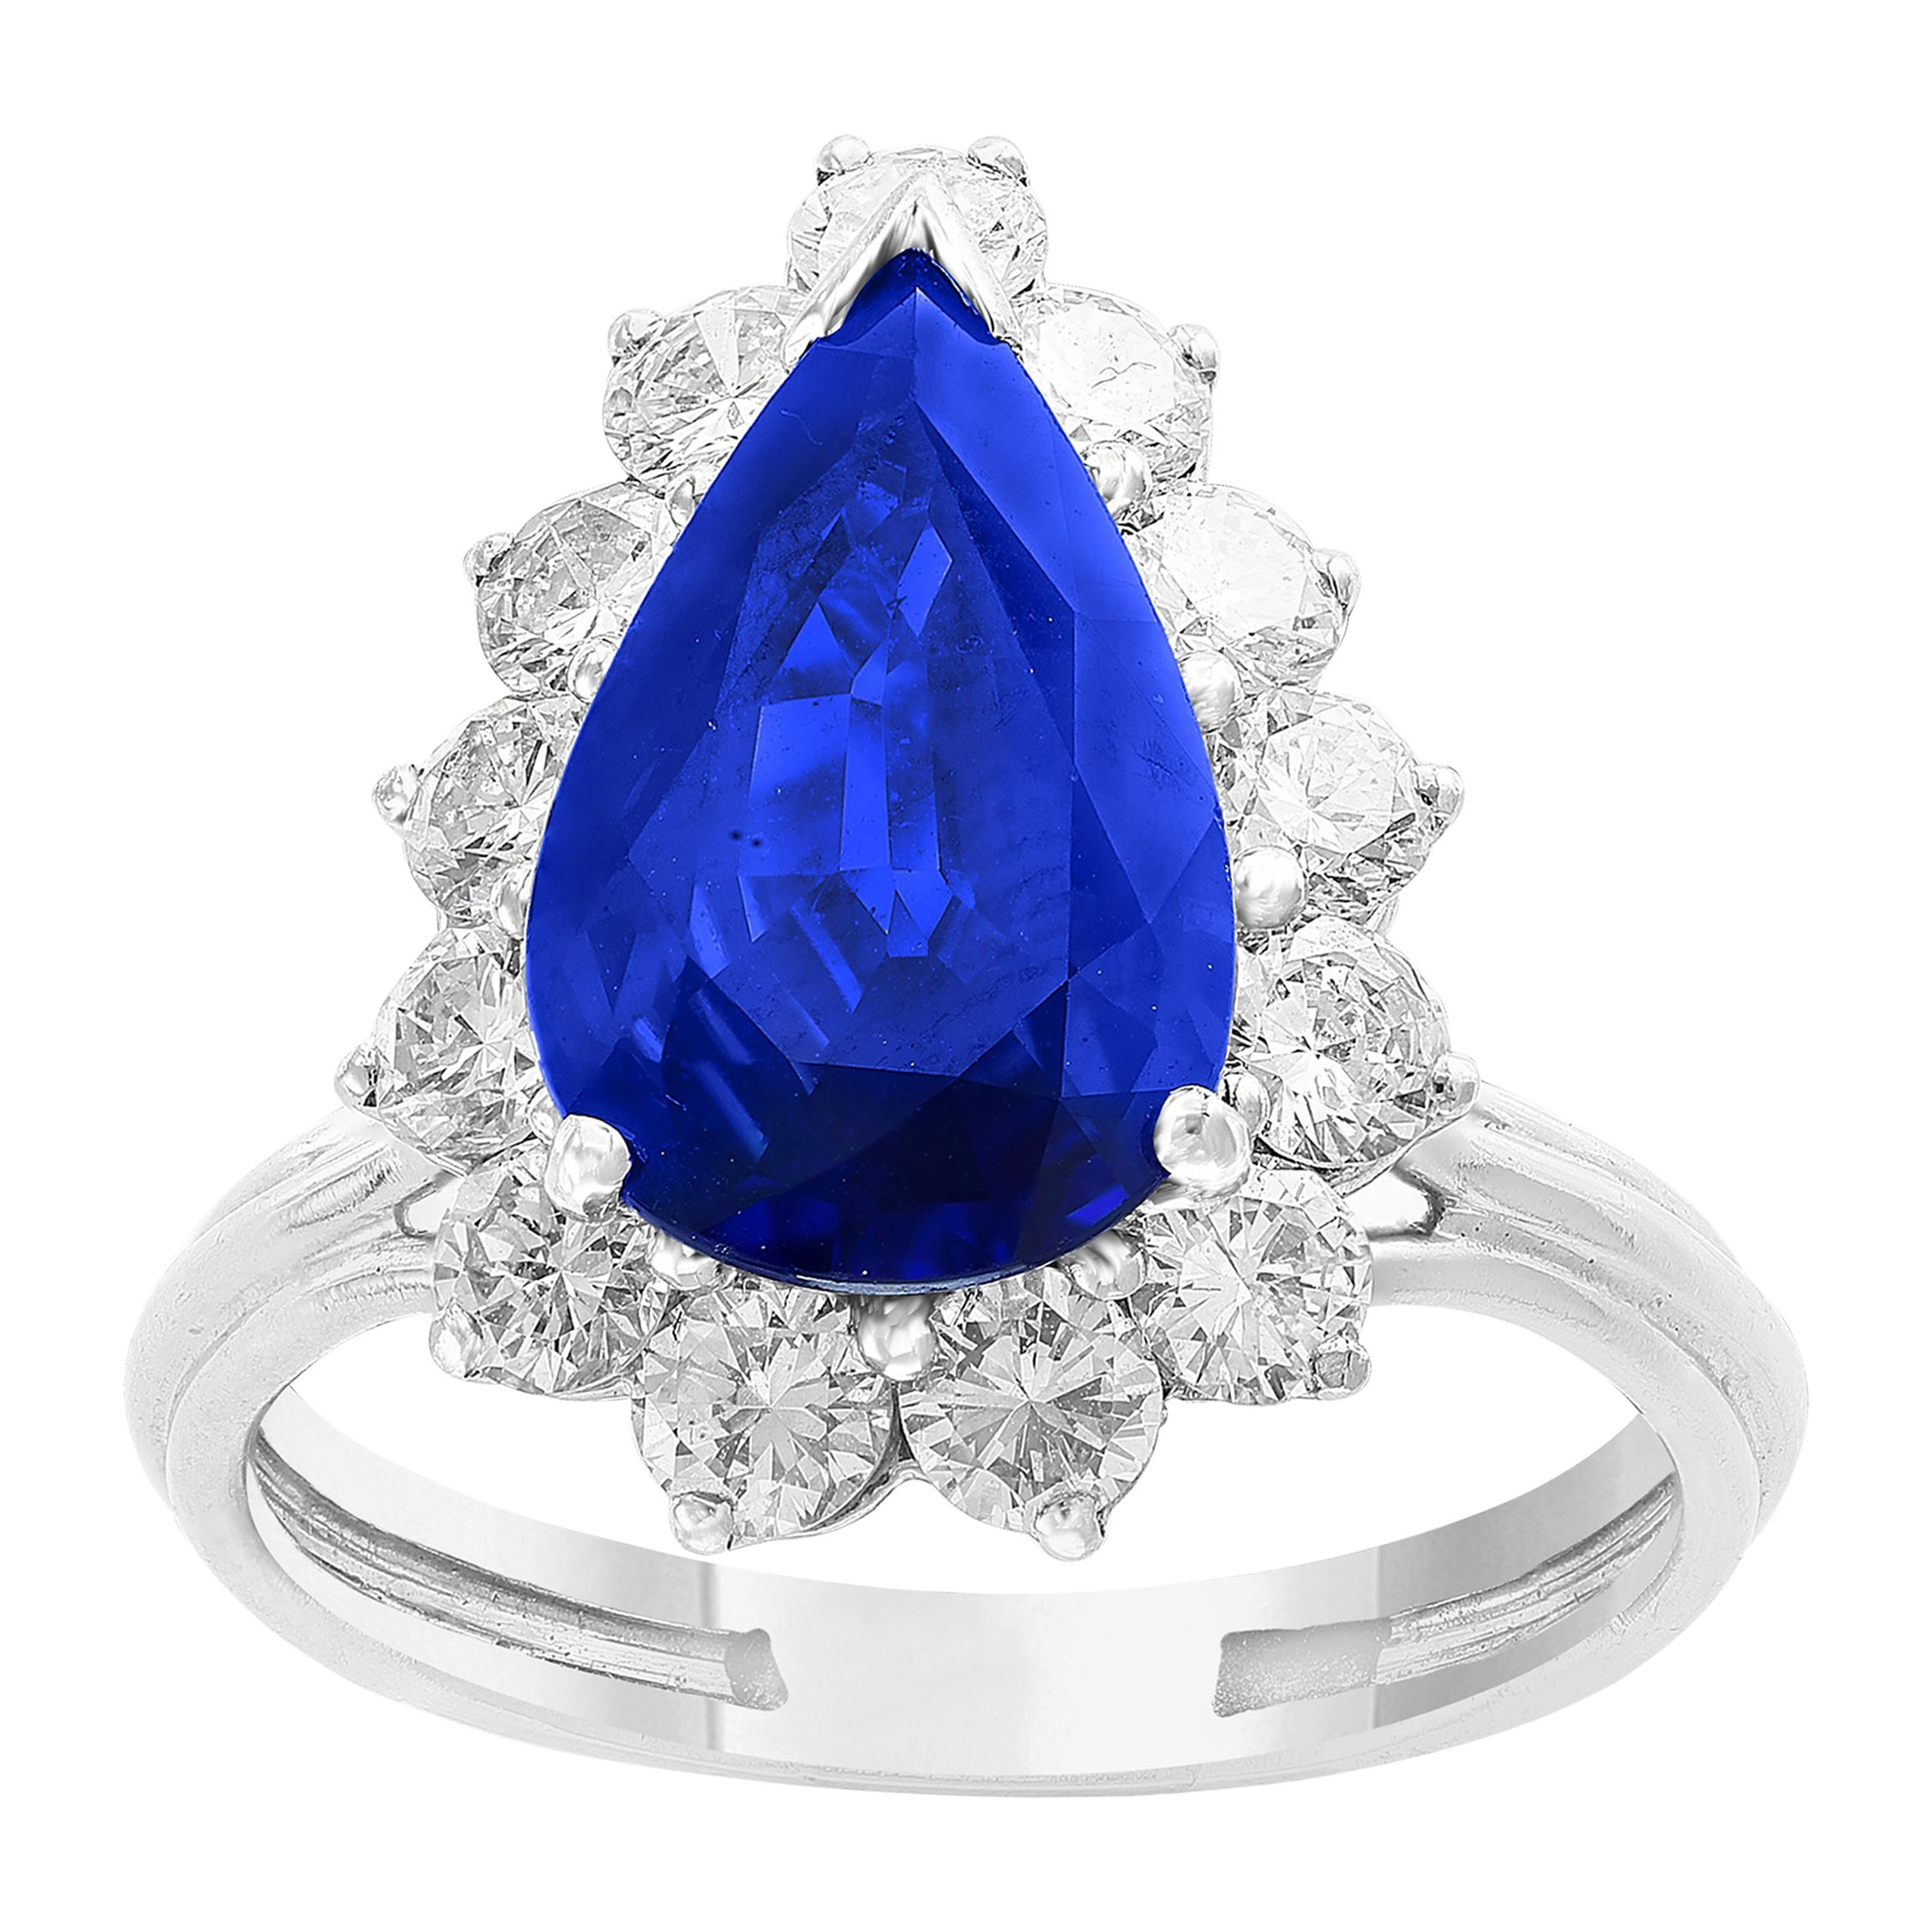 GIA Certified 4.2 Carat Ceylon Blue Pear Sapphire & Diamond Ring Platinum